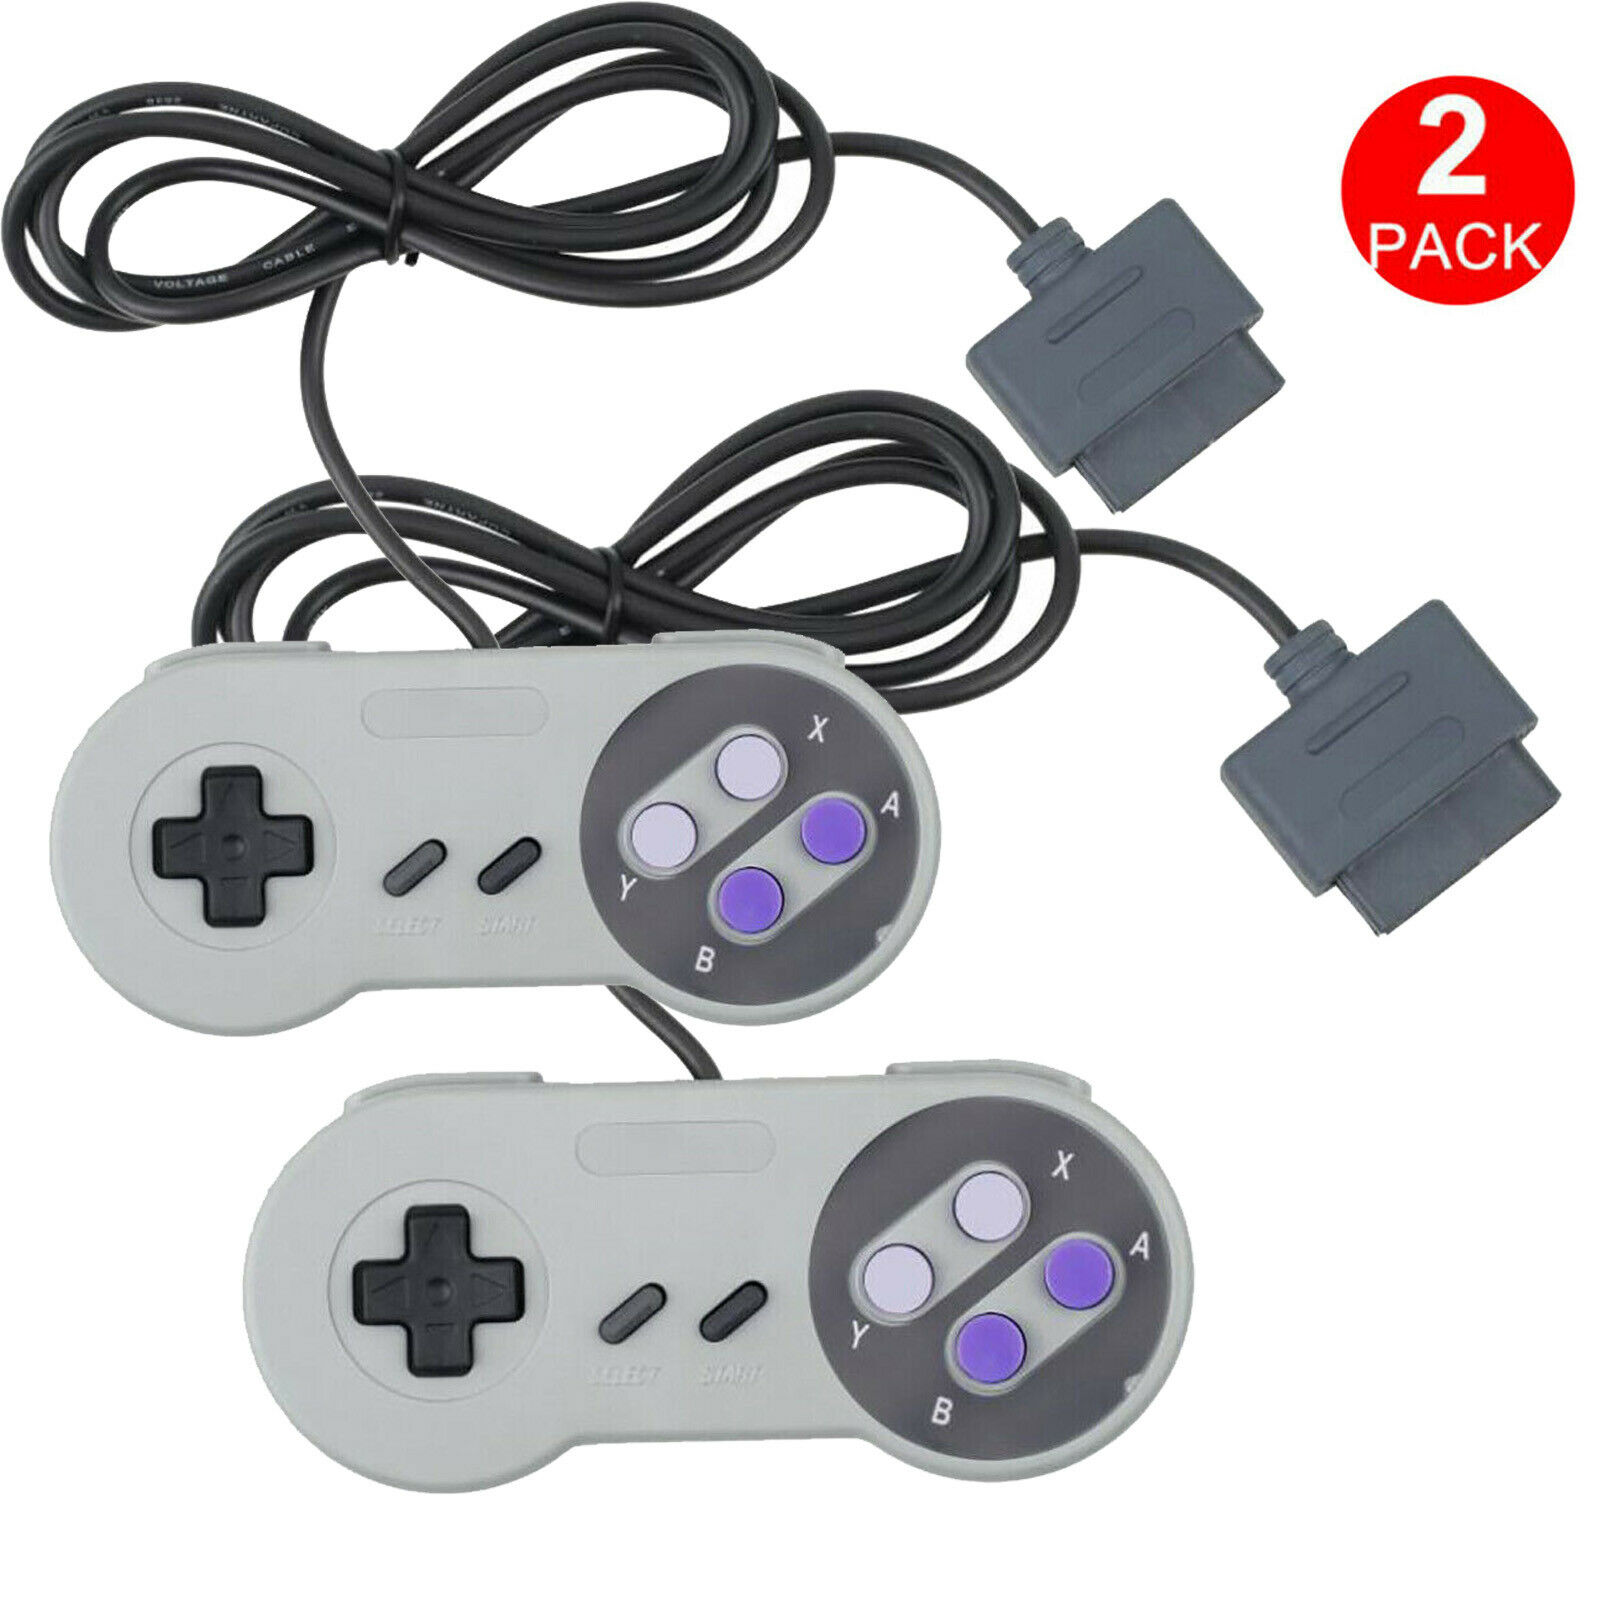 2 FOR New Super Nintendo SNES System Console Replacement Controller 6FT SNS-005 Controllers & Attachments